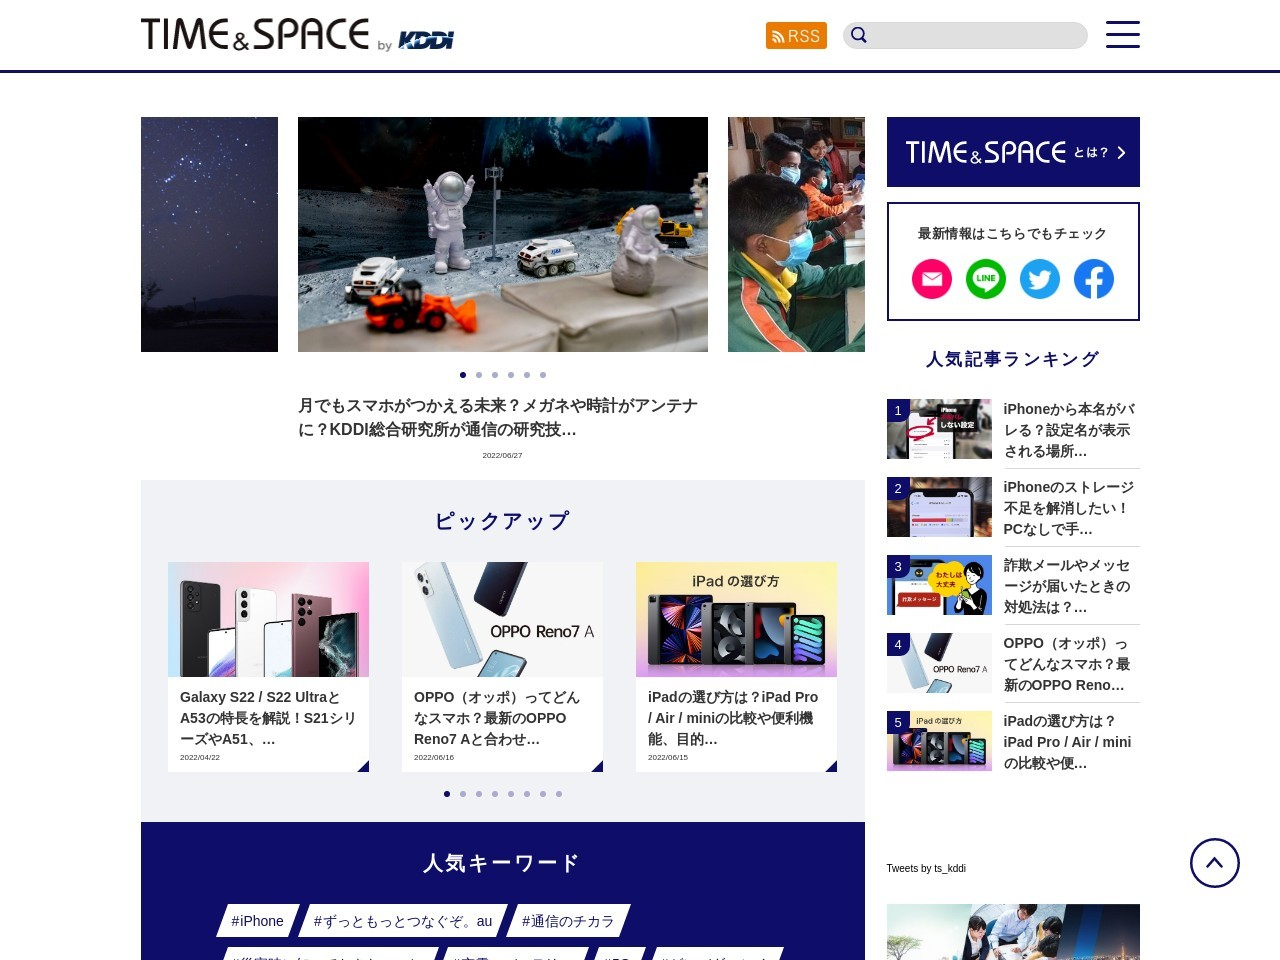 https://time-space.kddi.com/ict-keywords/20200203/2838